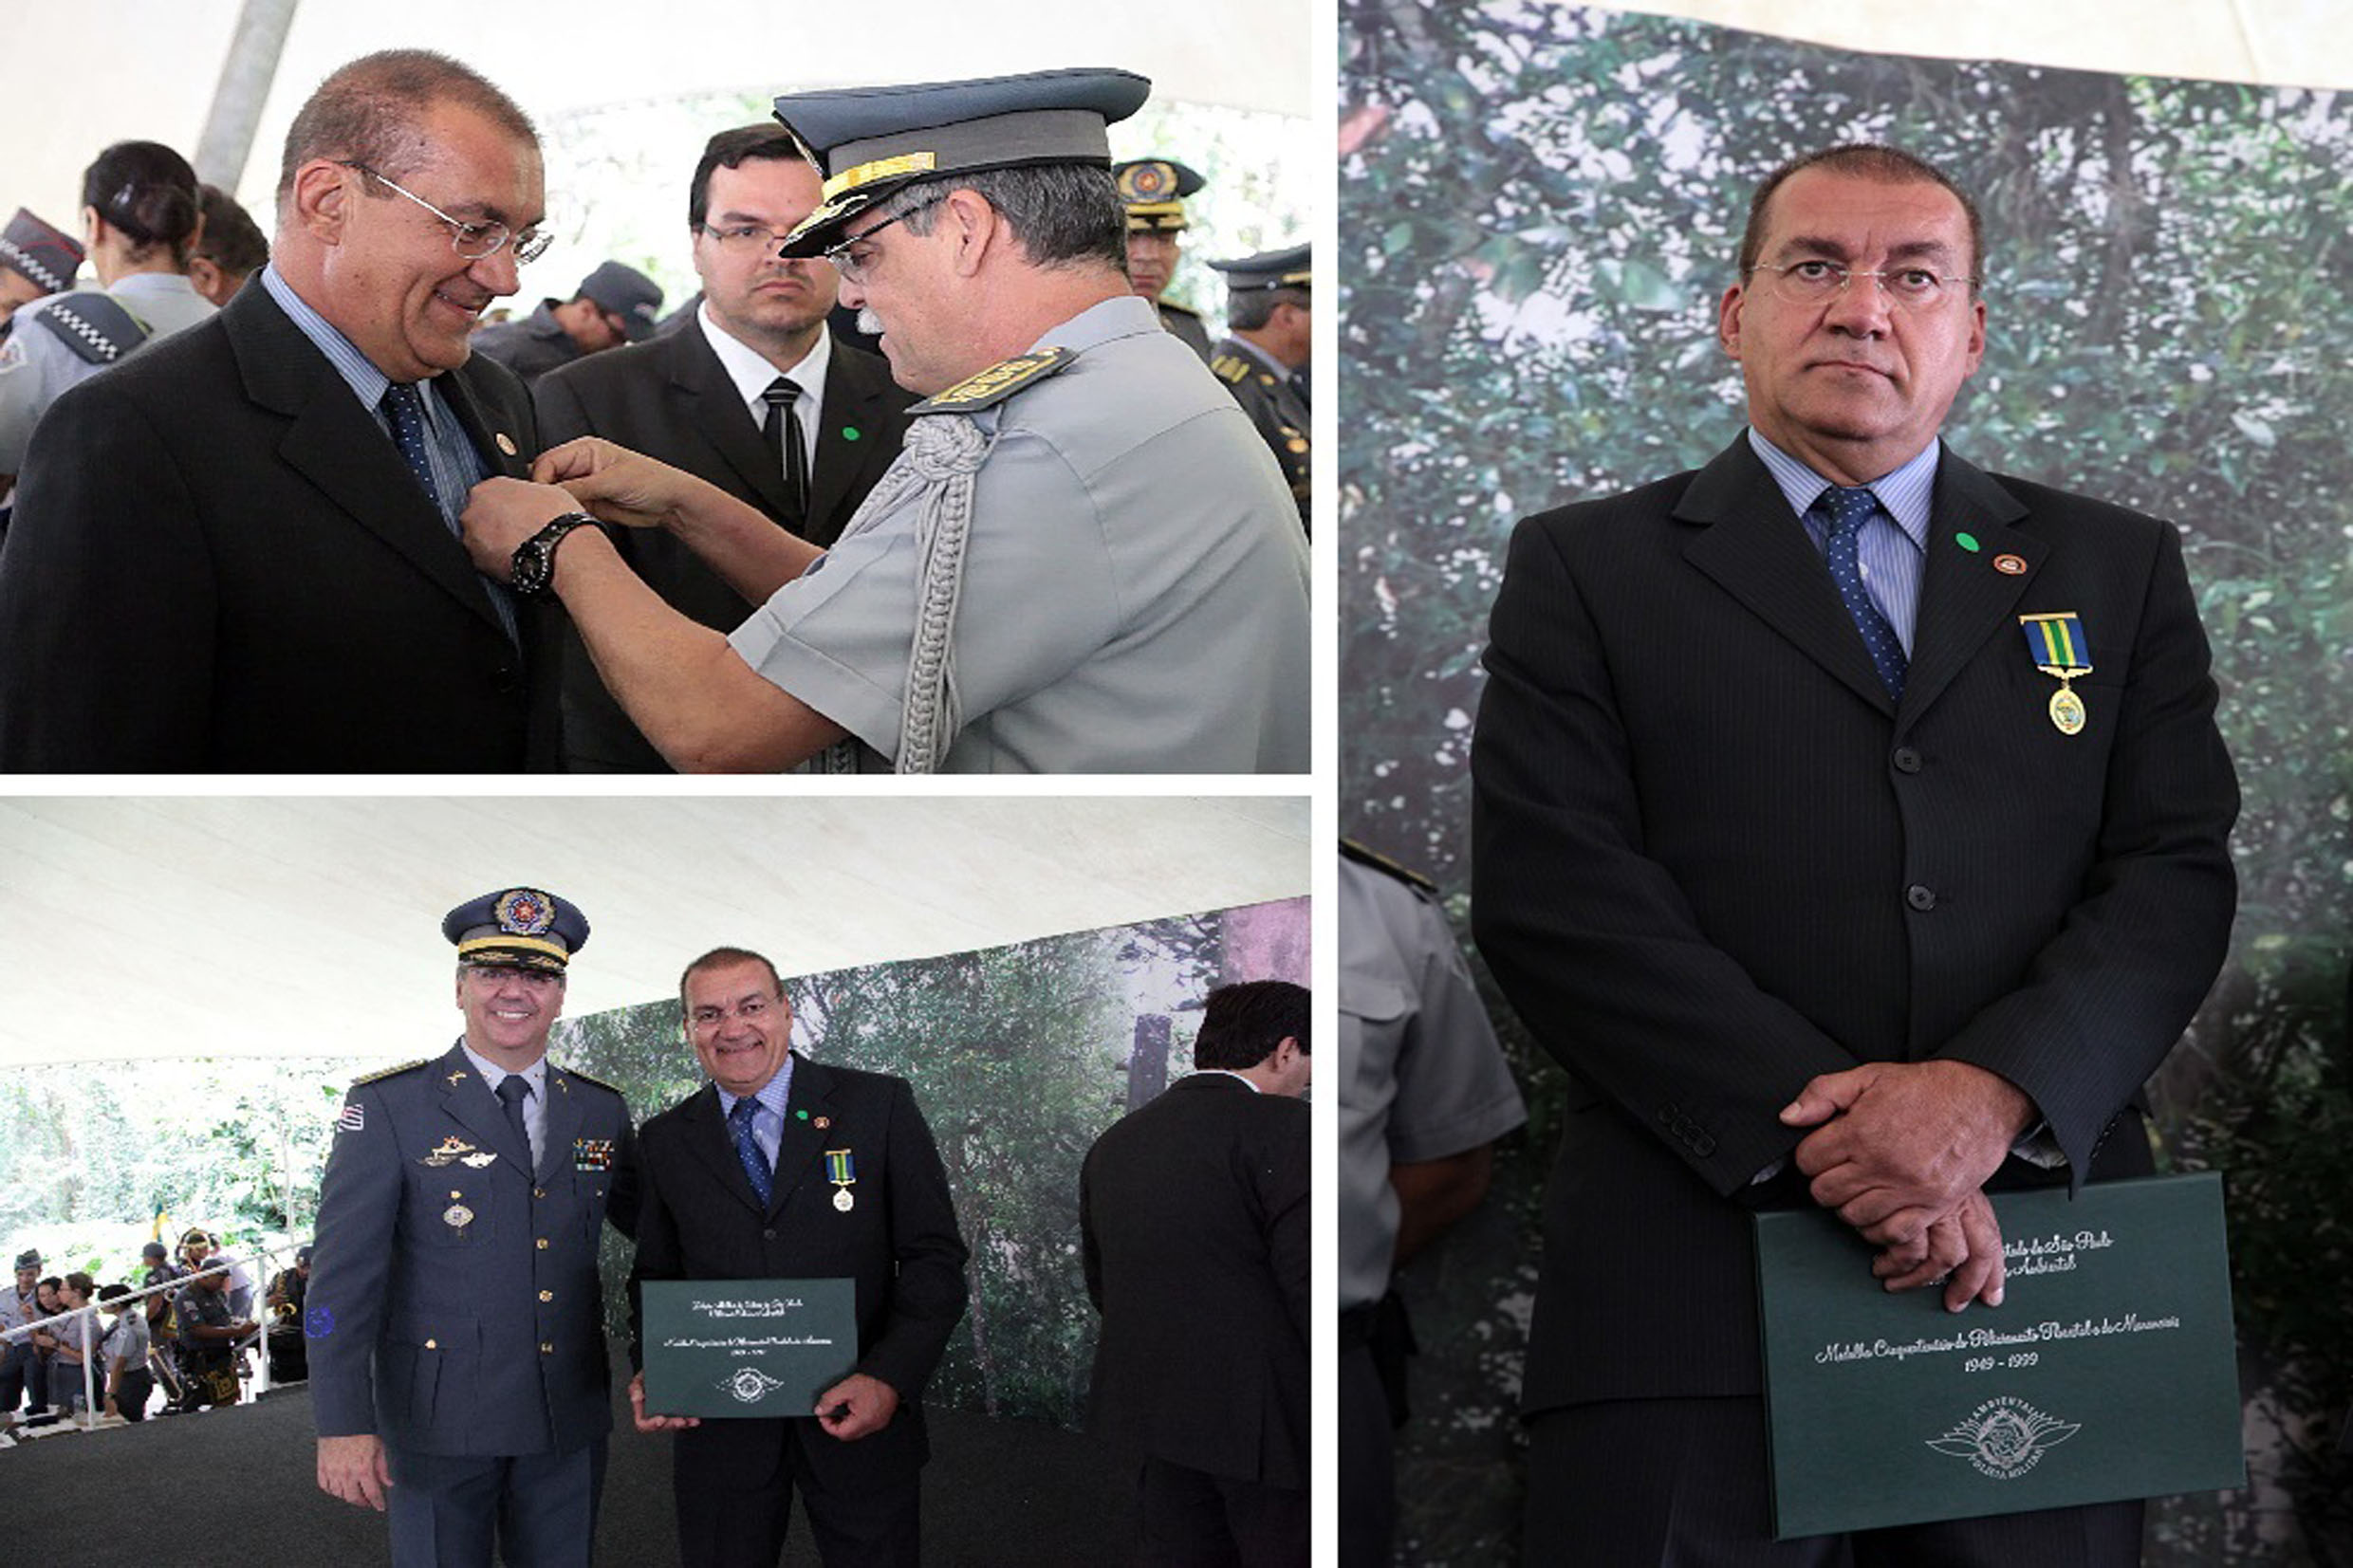 Feliciano Filho recebe a medalha<a style='float:right' href='https://www3.al.sp.gov.br/repositorio/noticia/N-12-2016/fg198203.jpg' target=_blank><img src='/_img/material-file-download-white.png' width='14px' alt='Clique para baixar a imagem'></a>